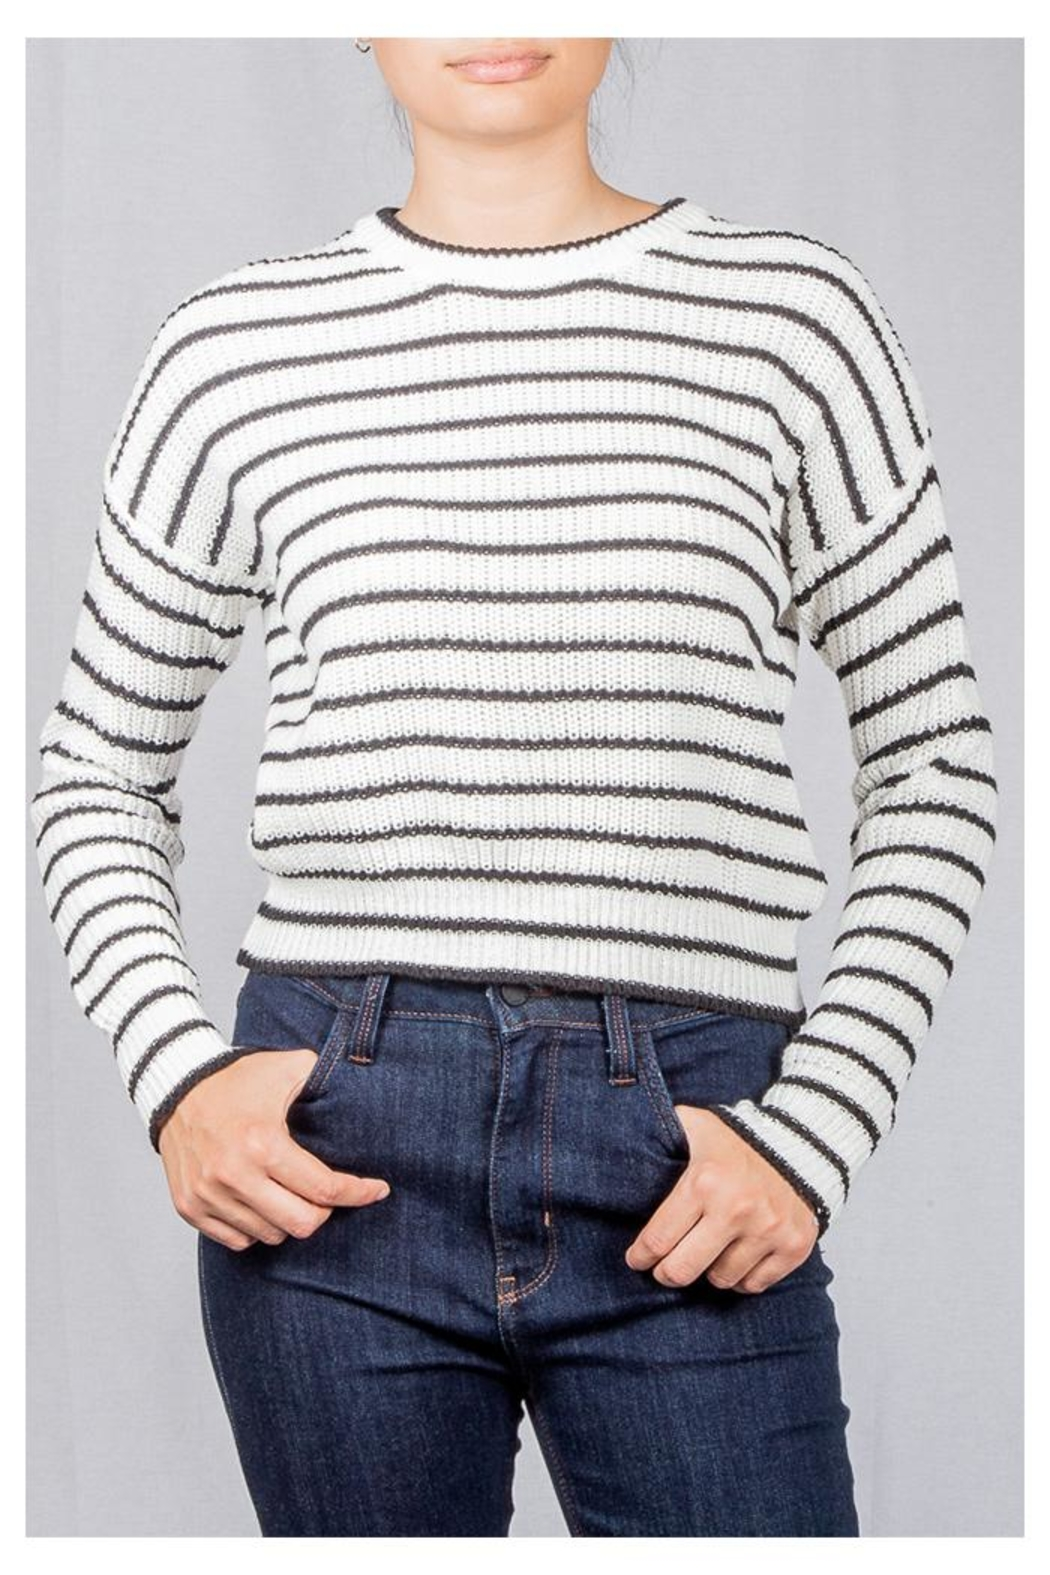 Audrey 3+1 Striped Knit Sweater - Main Image